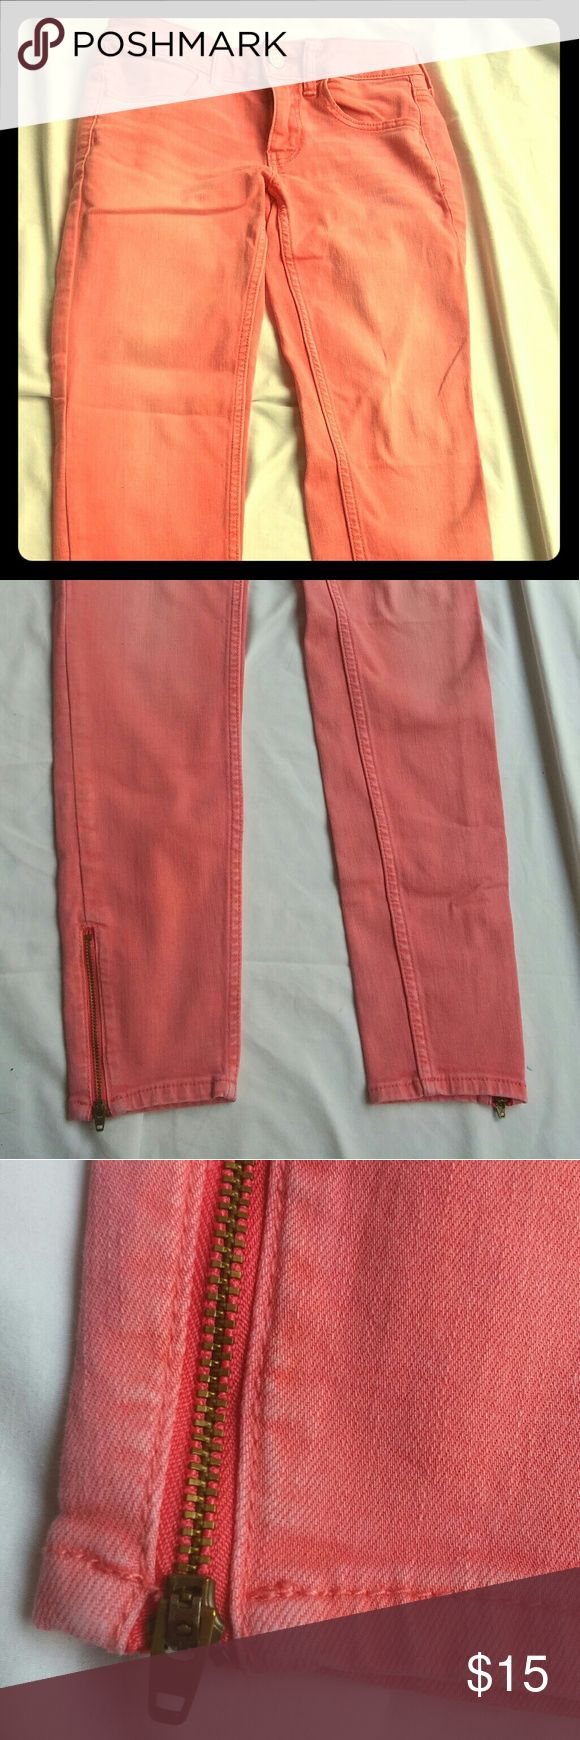 American Eagle Light Coral Skinny Jeans Light washed coral super stretch skinnies with zippered leg detail from American Eagle. Great shape, hardly worn. Comes from a nonsmoking environment. American Eagle Outfitters Jeans Skinny